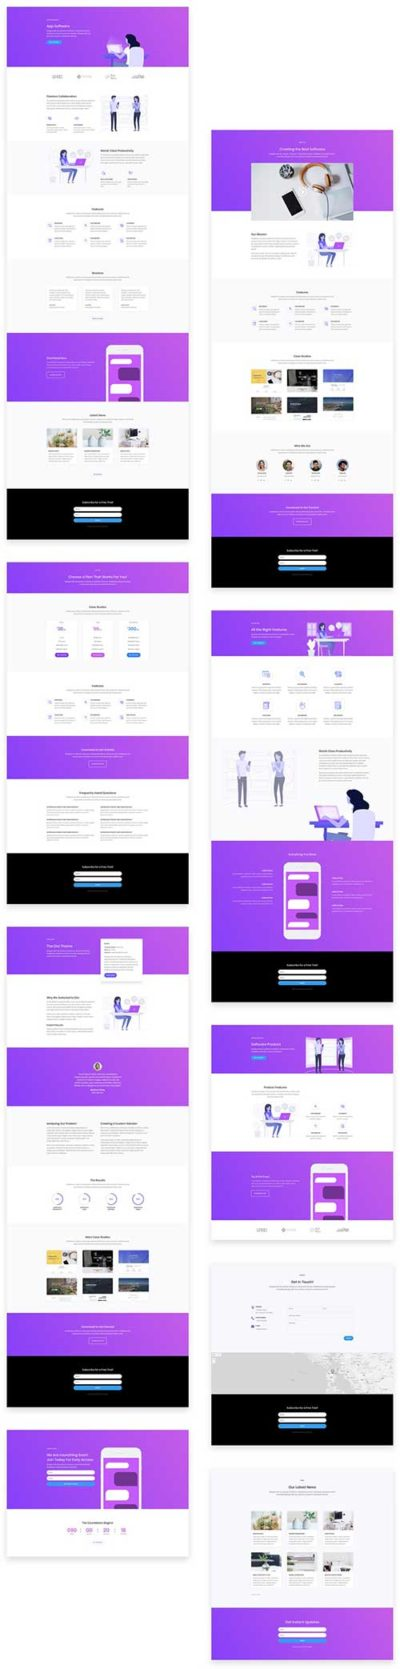 divi layout for software marketing